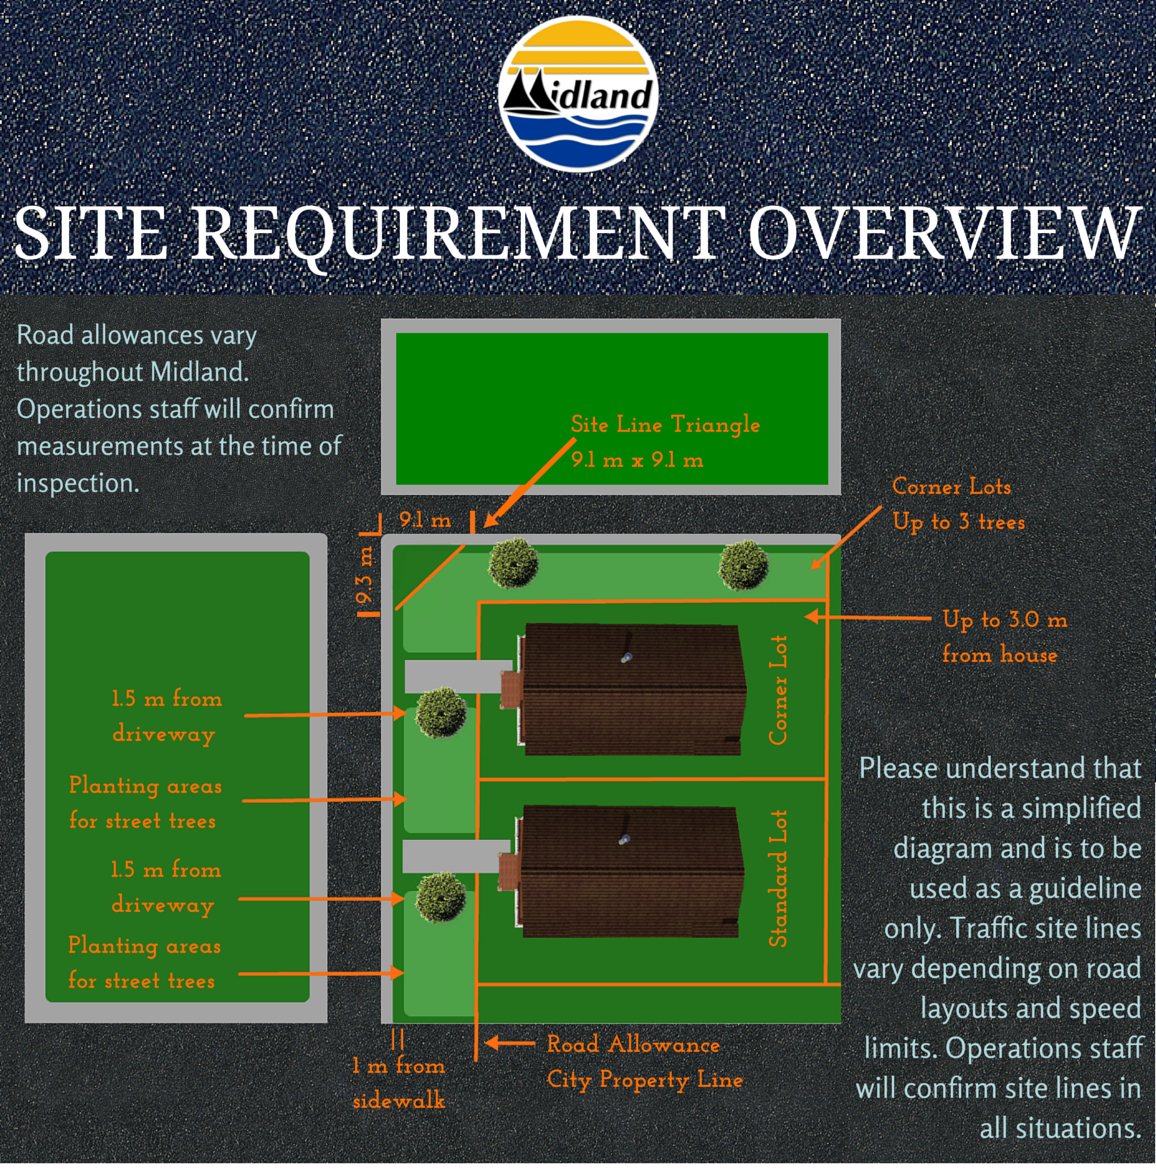 Site requirement overview 2.png